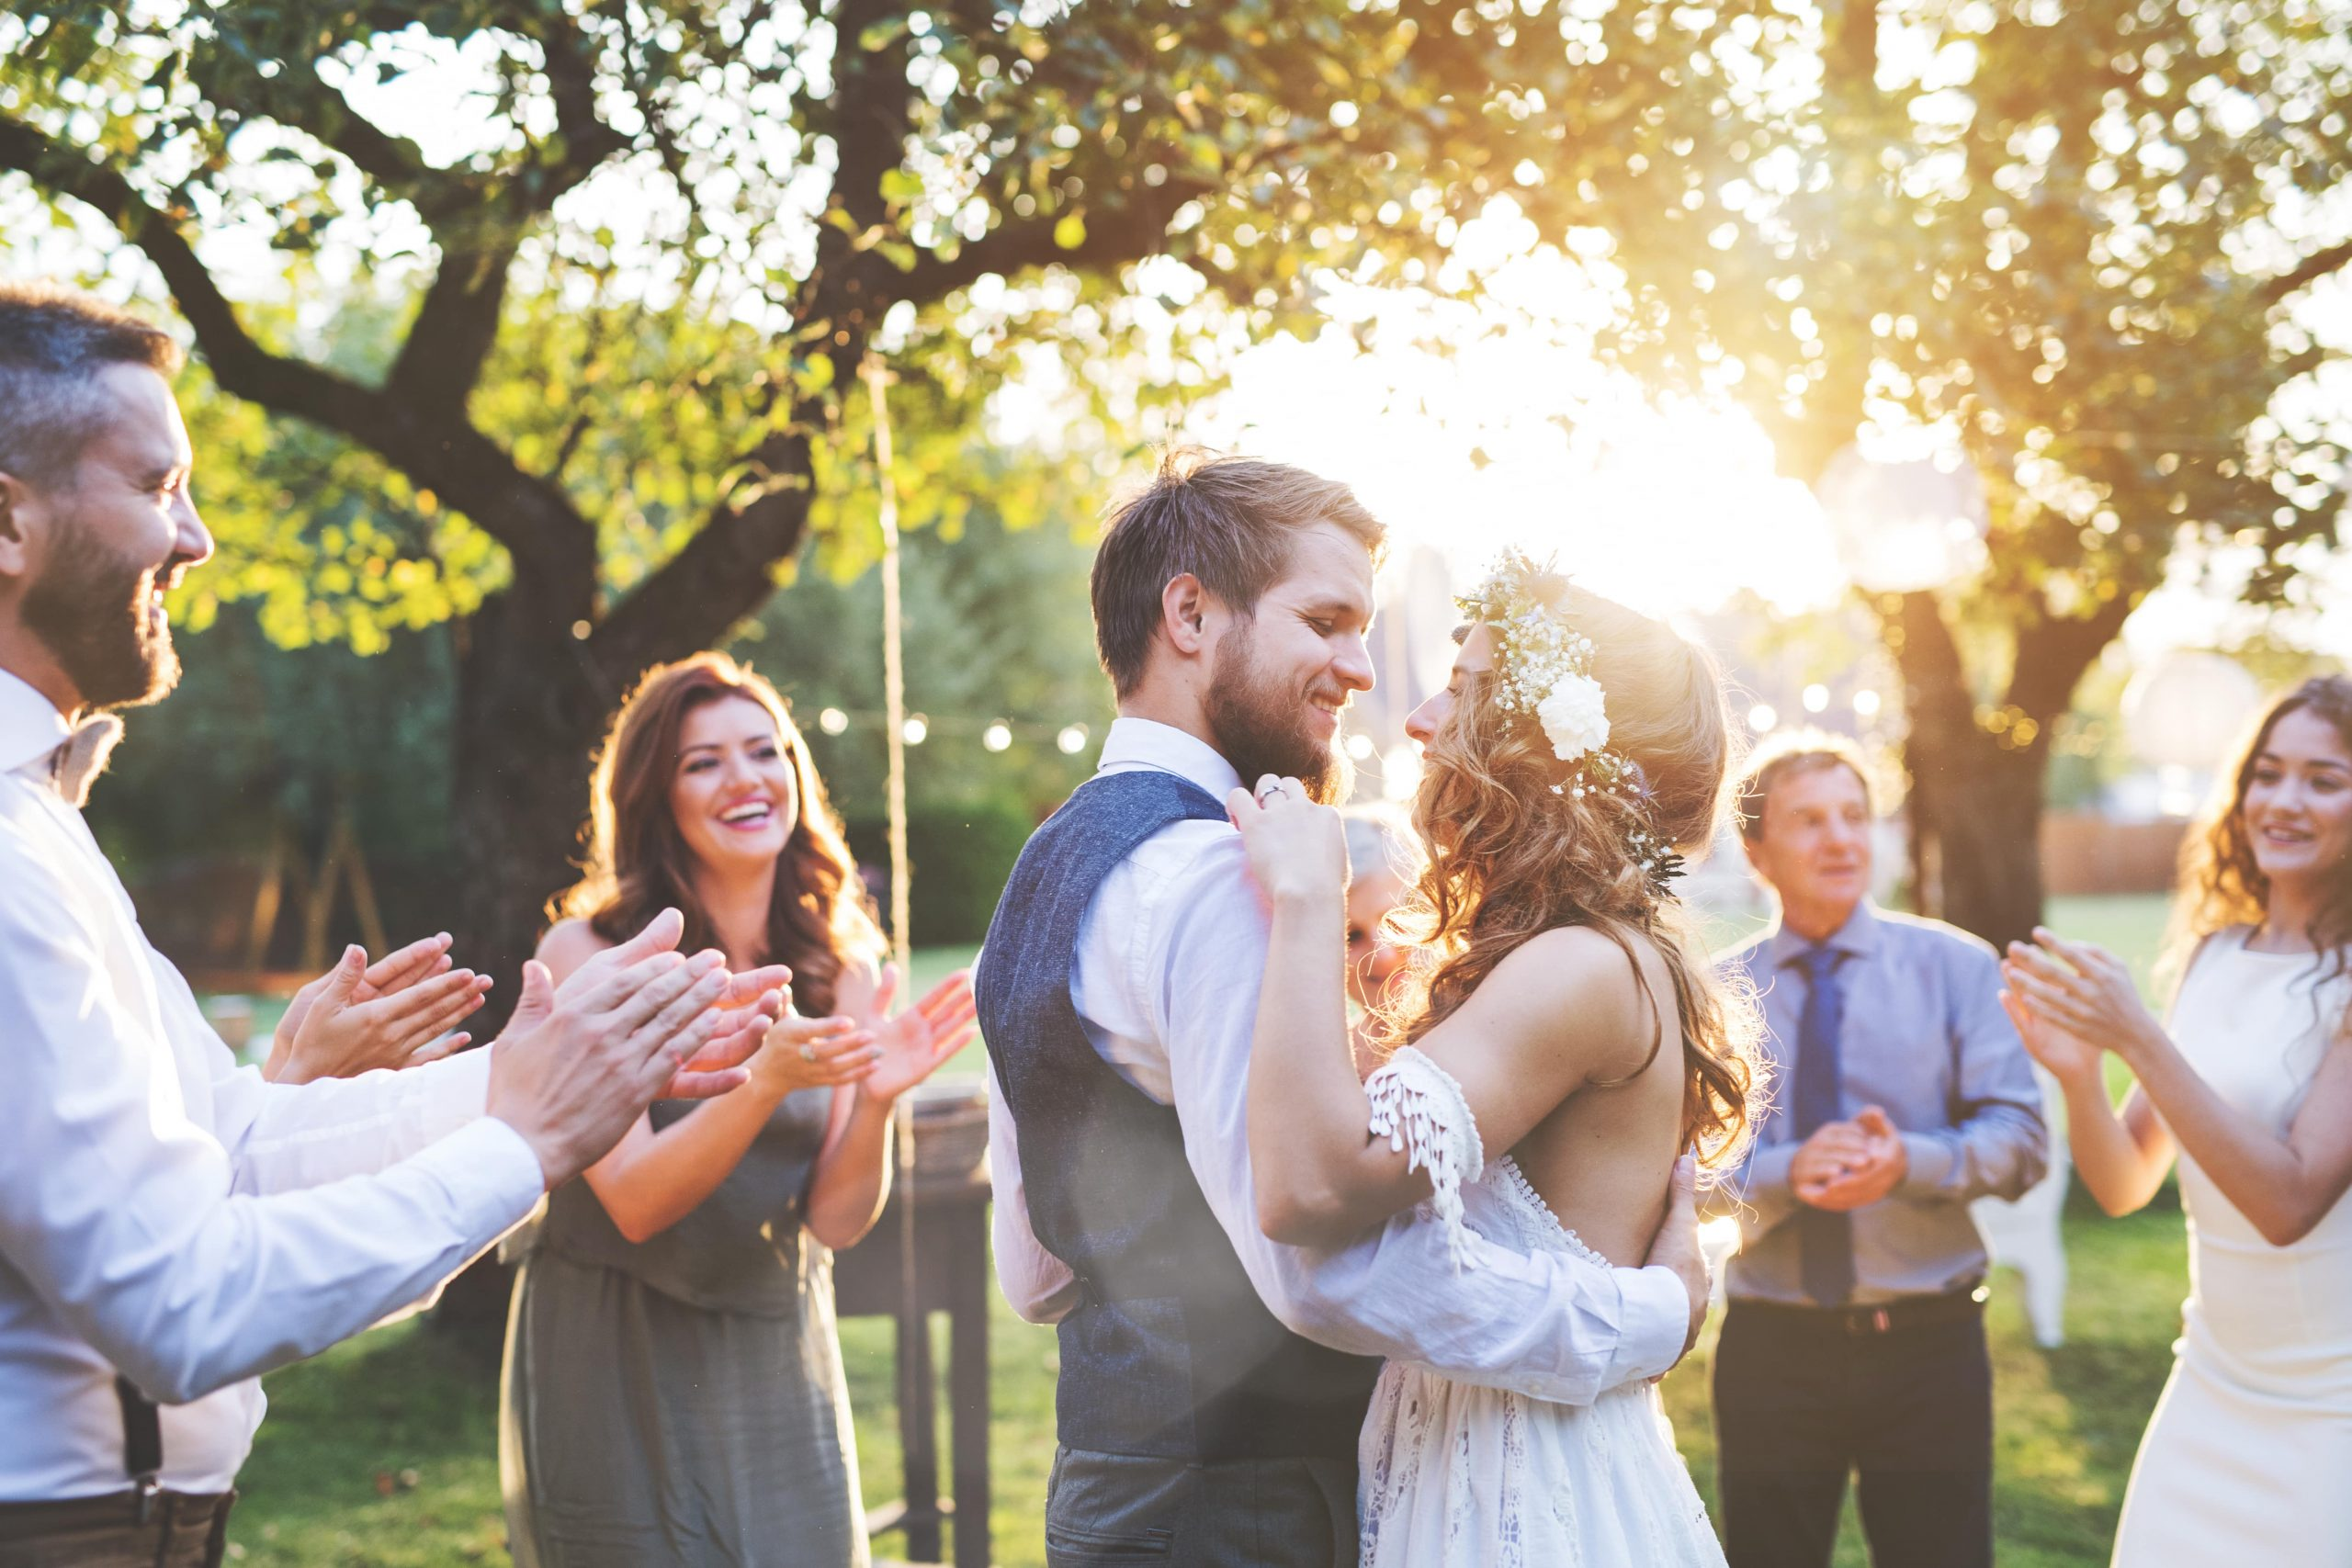 Outdoor small micro weddings